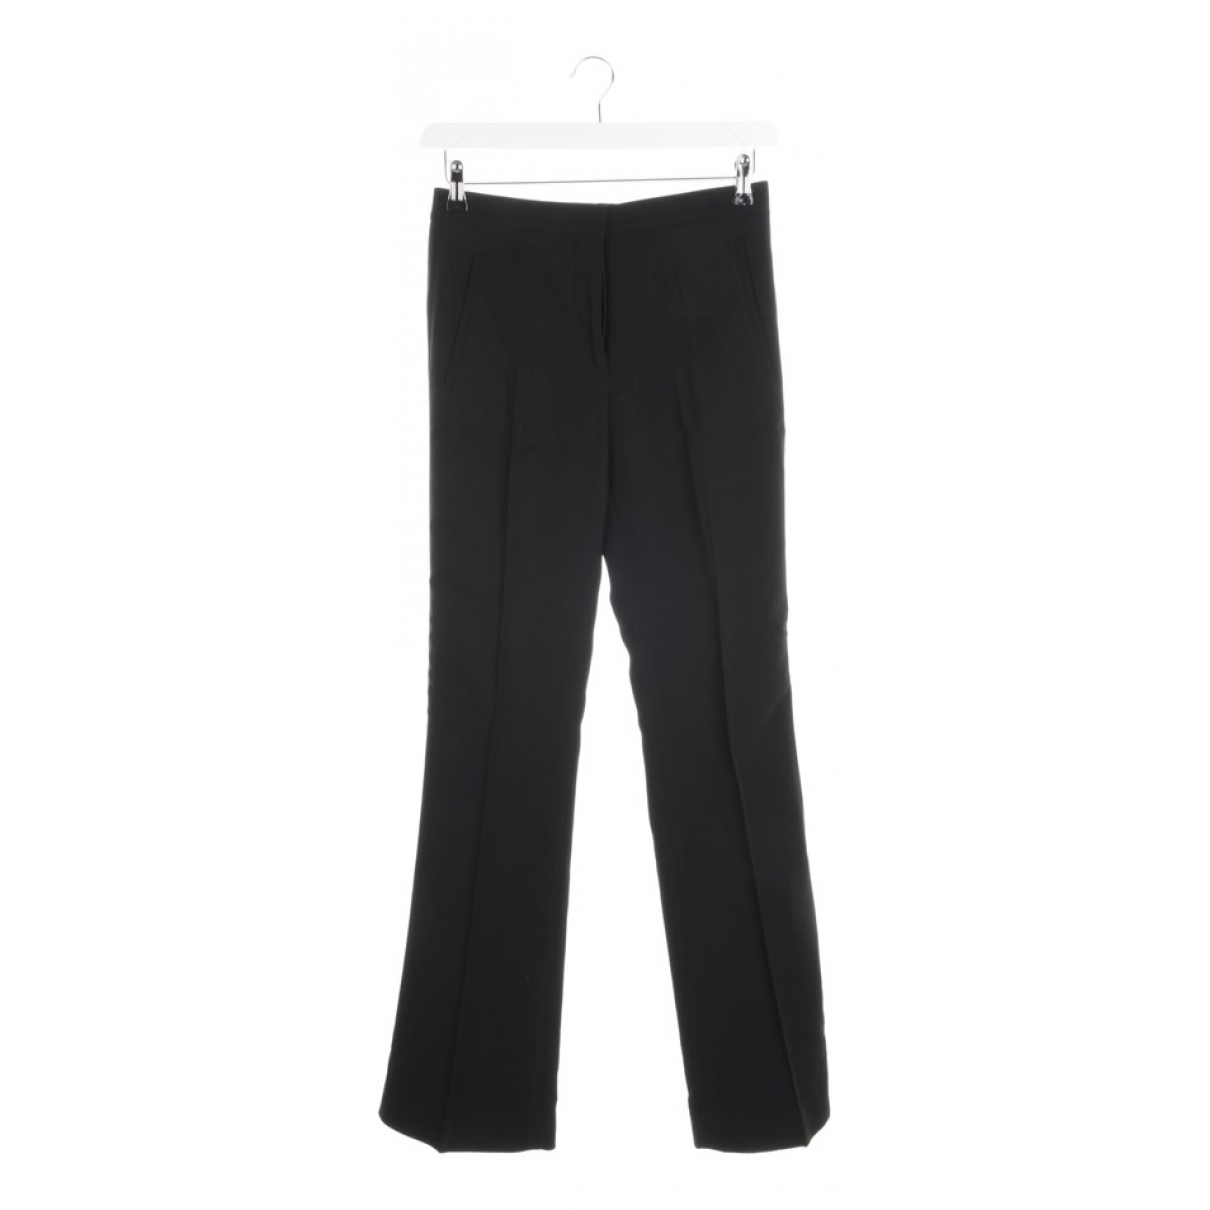 Givenchy \N Black Trousers for Women 36 FR